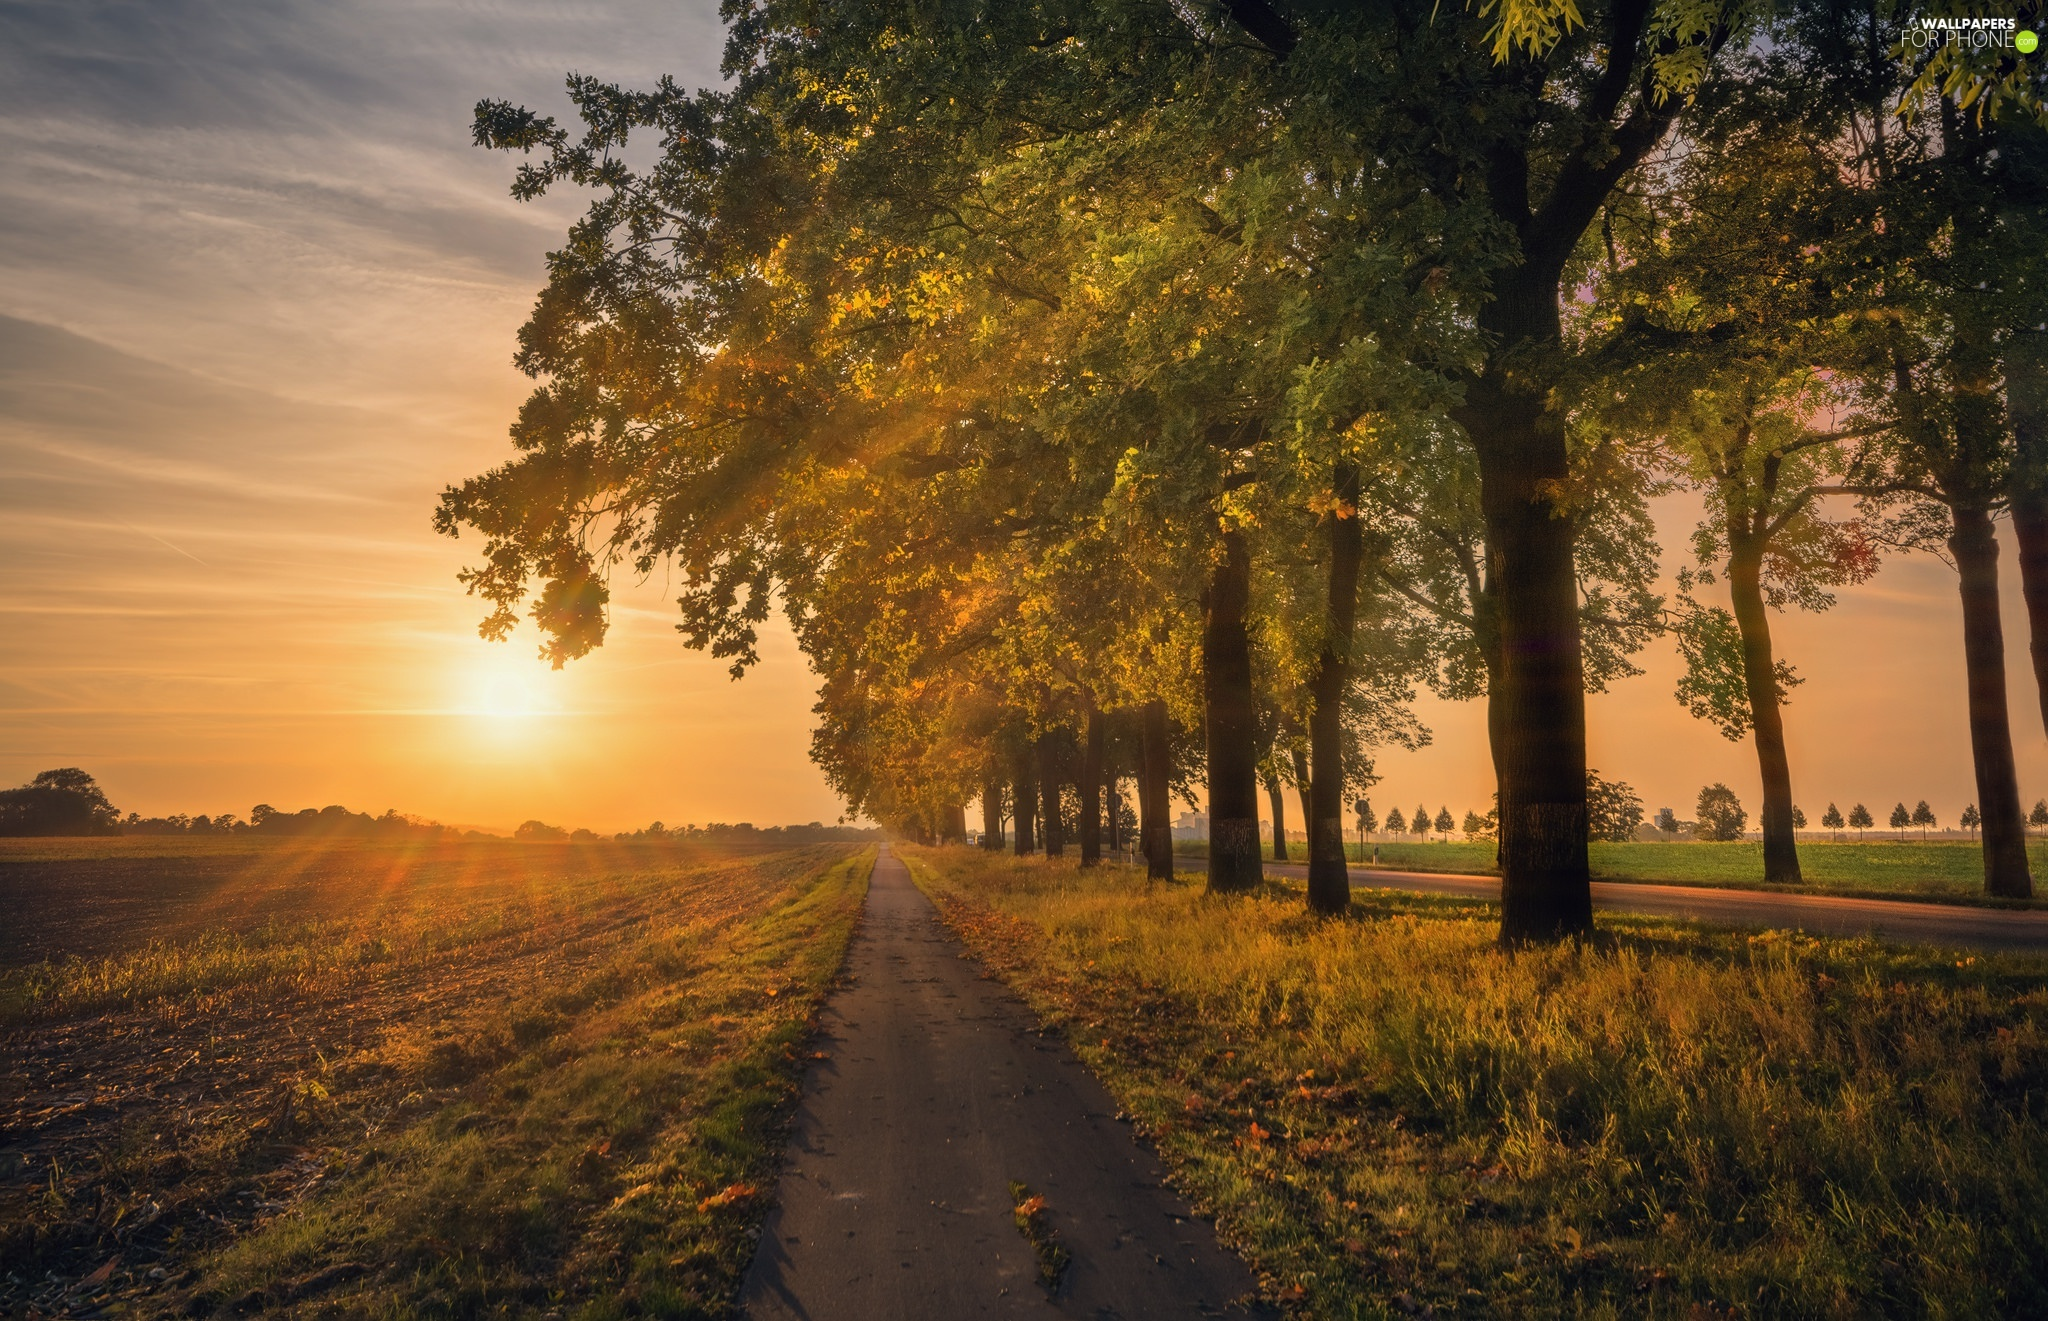 field, autumn, viewes, Great Sunsets, trees, Way